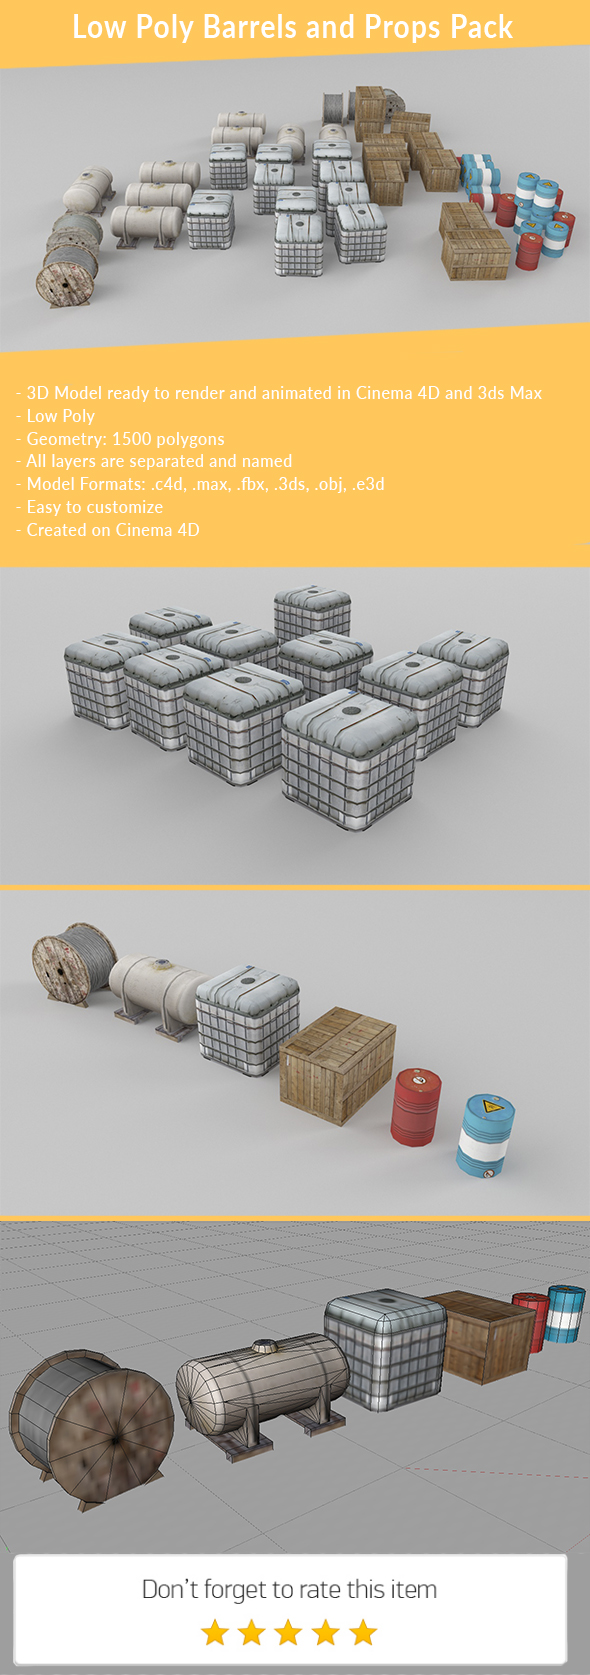 Low Poly Props Pack - 3DOcean Item for Sale